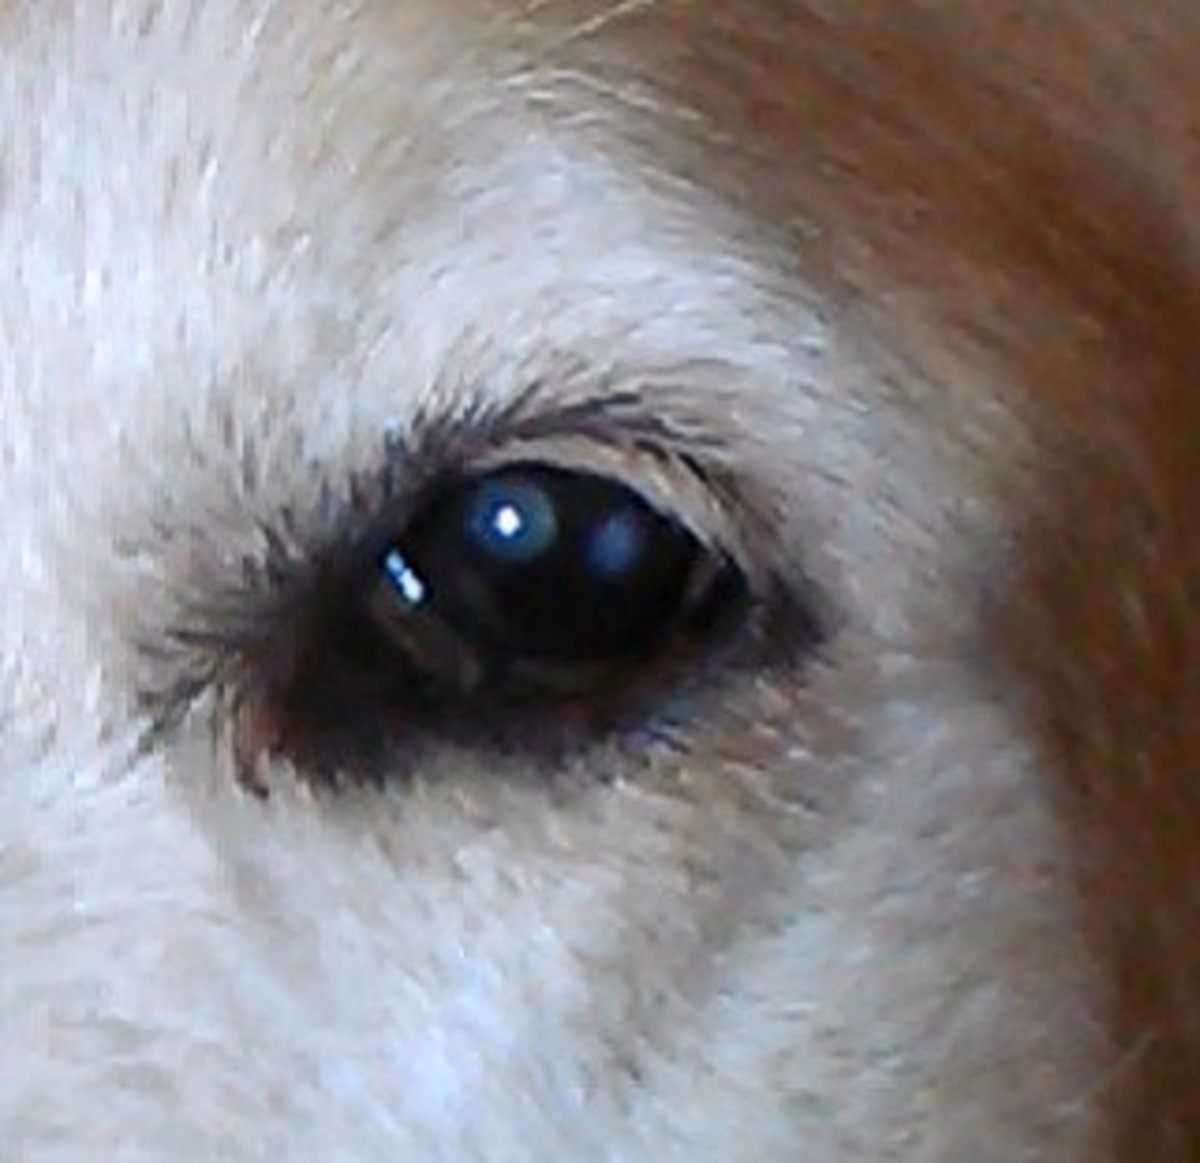 Cholesterol Deposits in a Dog's Eye